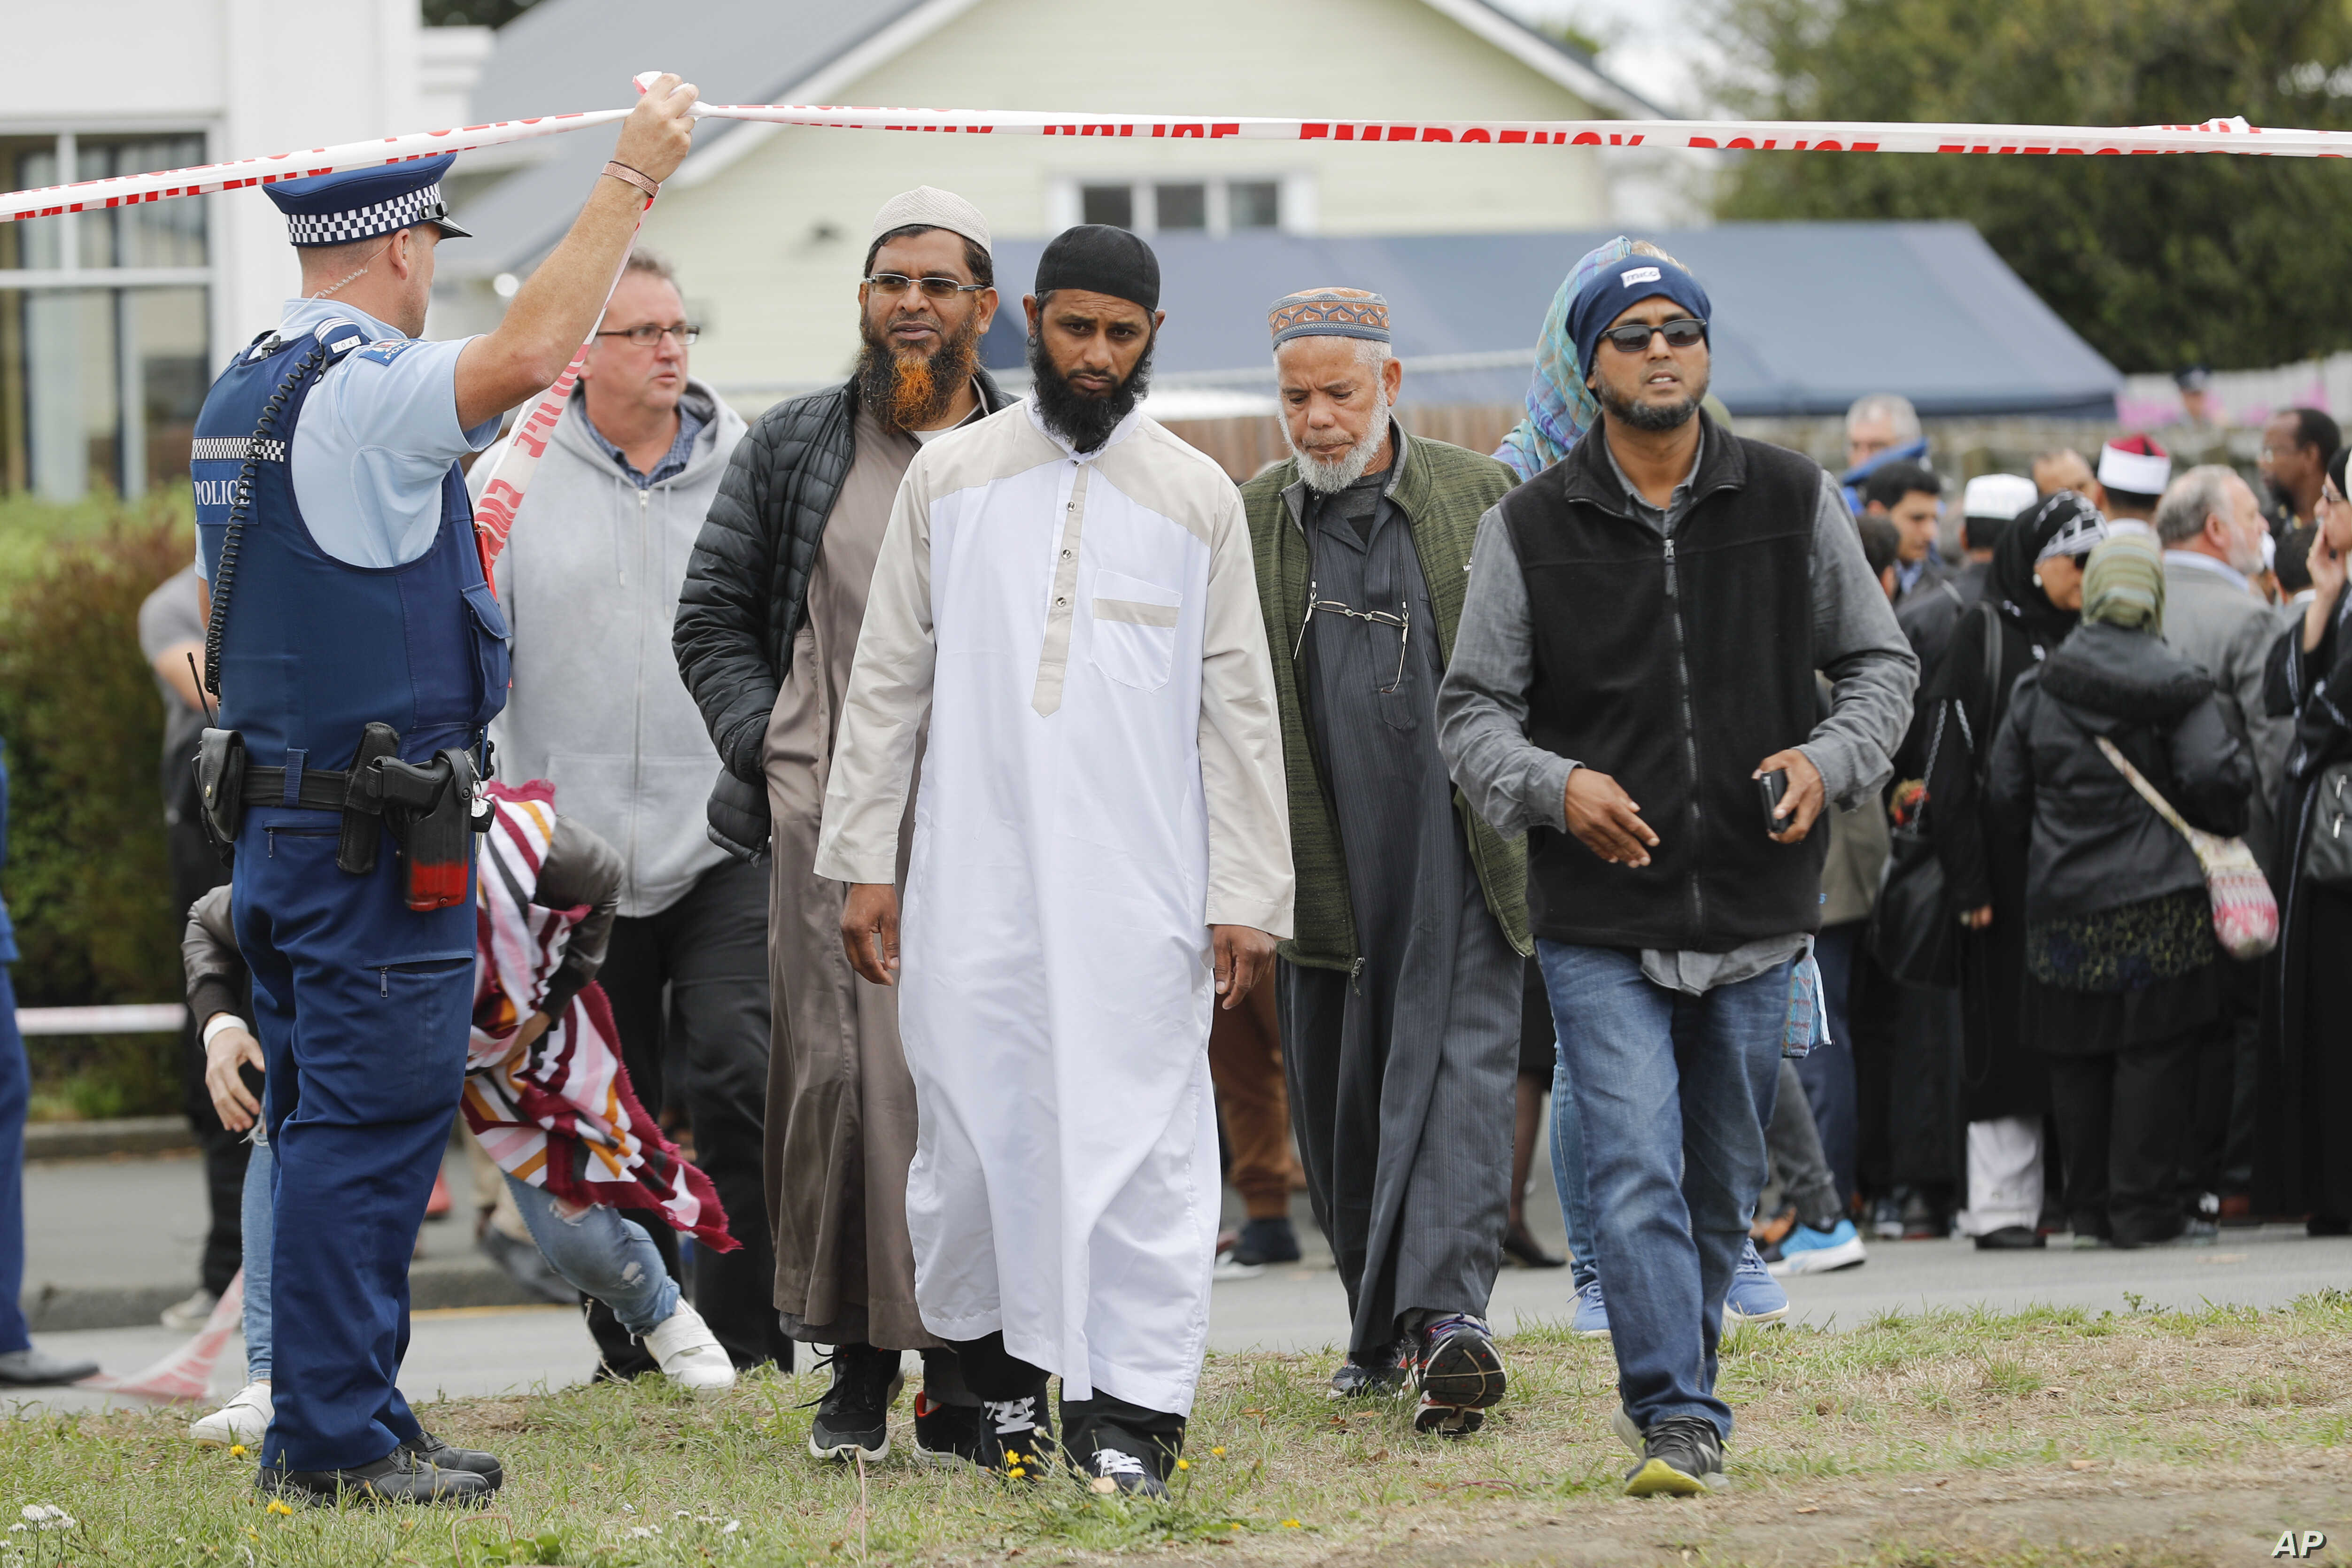 Members of Muslim religious groups leave after a special blessing ceremony near the site of Friday's shooting outside the Linwood mosque in Christchurch, New Zealand, March 18, 2019.